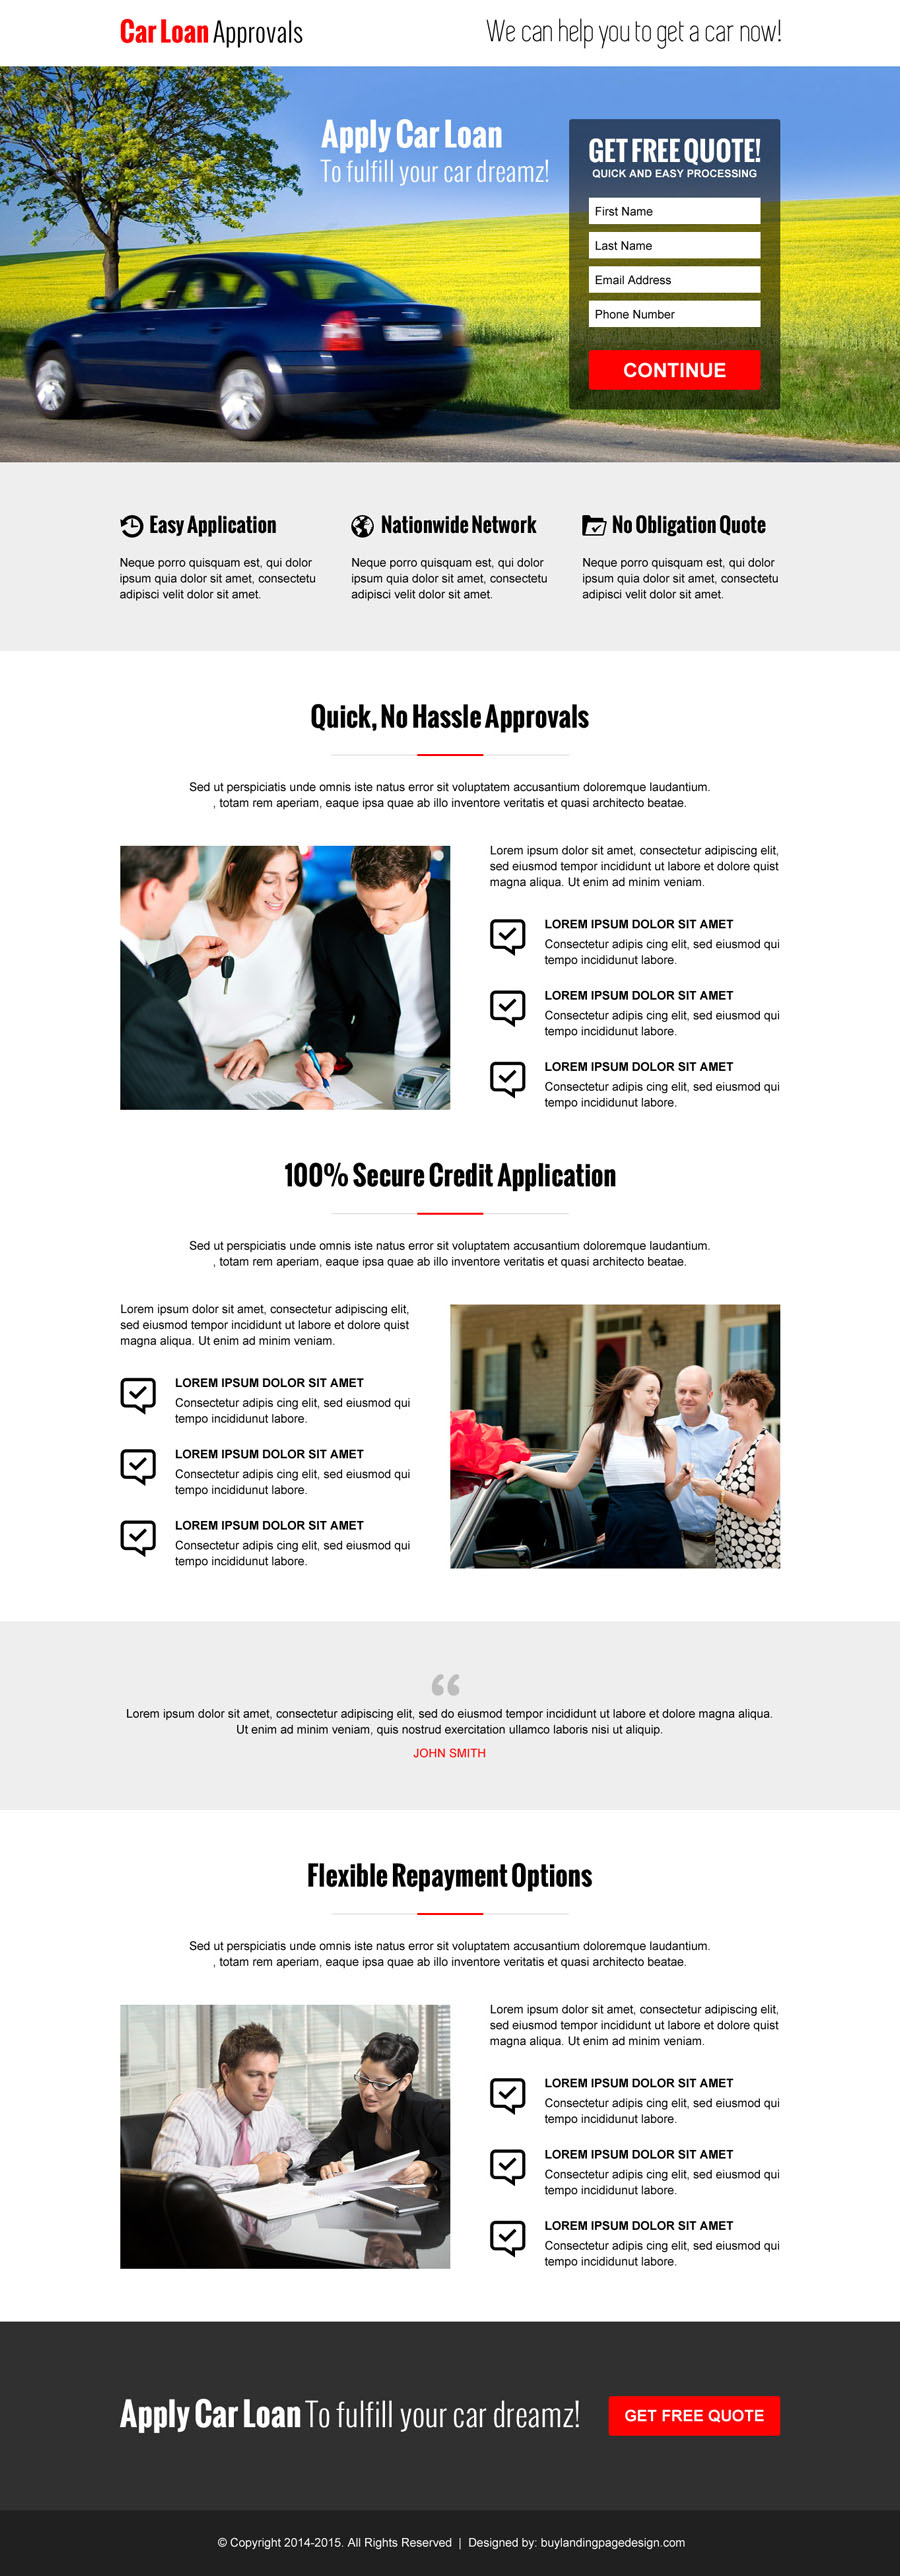 apply-for-car-loan-approvals-lead-capture-landing-page-design-template-014